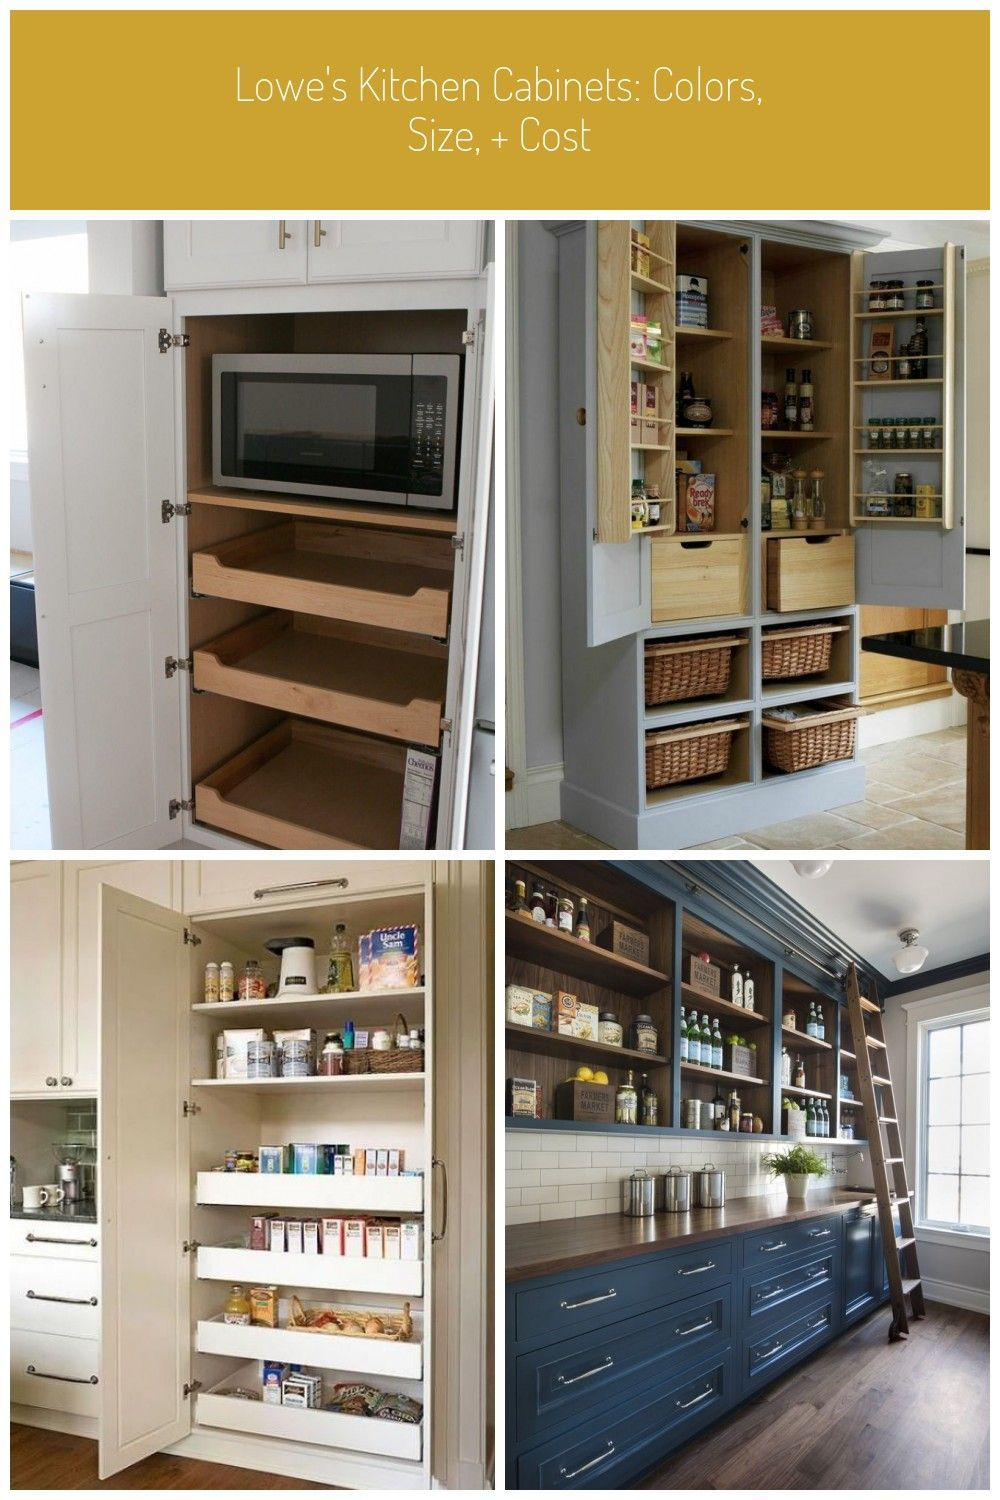 From Color To Cost And Everything In Between We Are Breaking Down Everything You In 2020 Kitchen Cabinet Colors Pantry Cabinet Free Standing Kitchen Pantry Cabinets